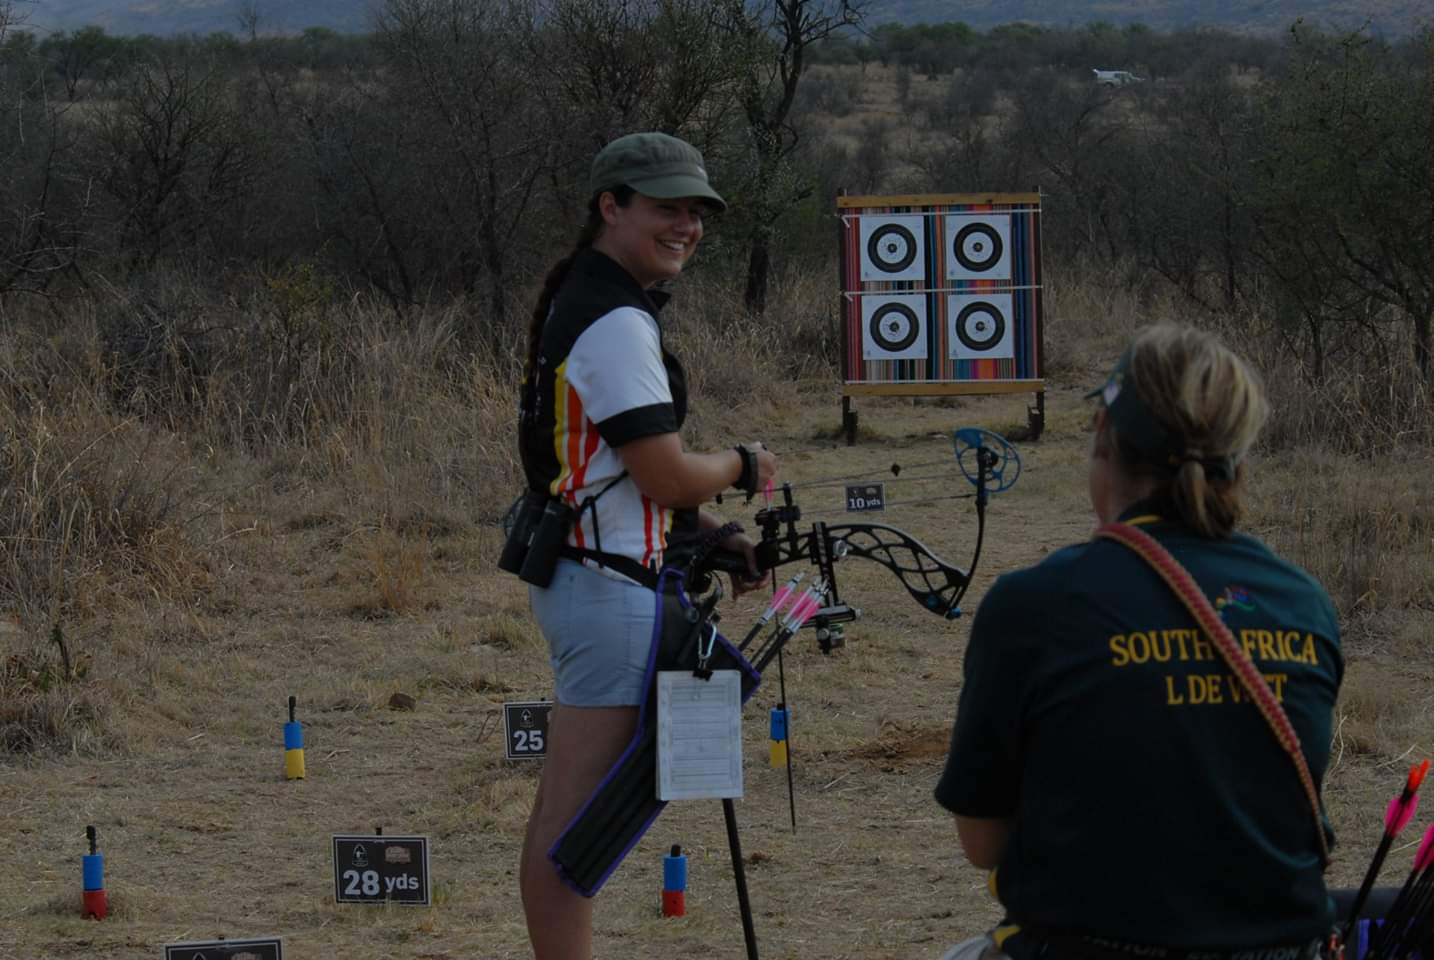 Joanette Karsten of the Polygraph Institute of South Africa representing the country in the World Field Archery Championships 2018.